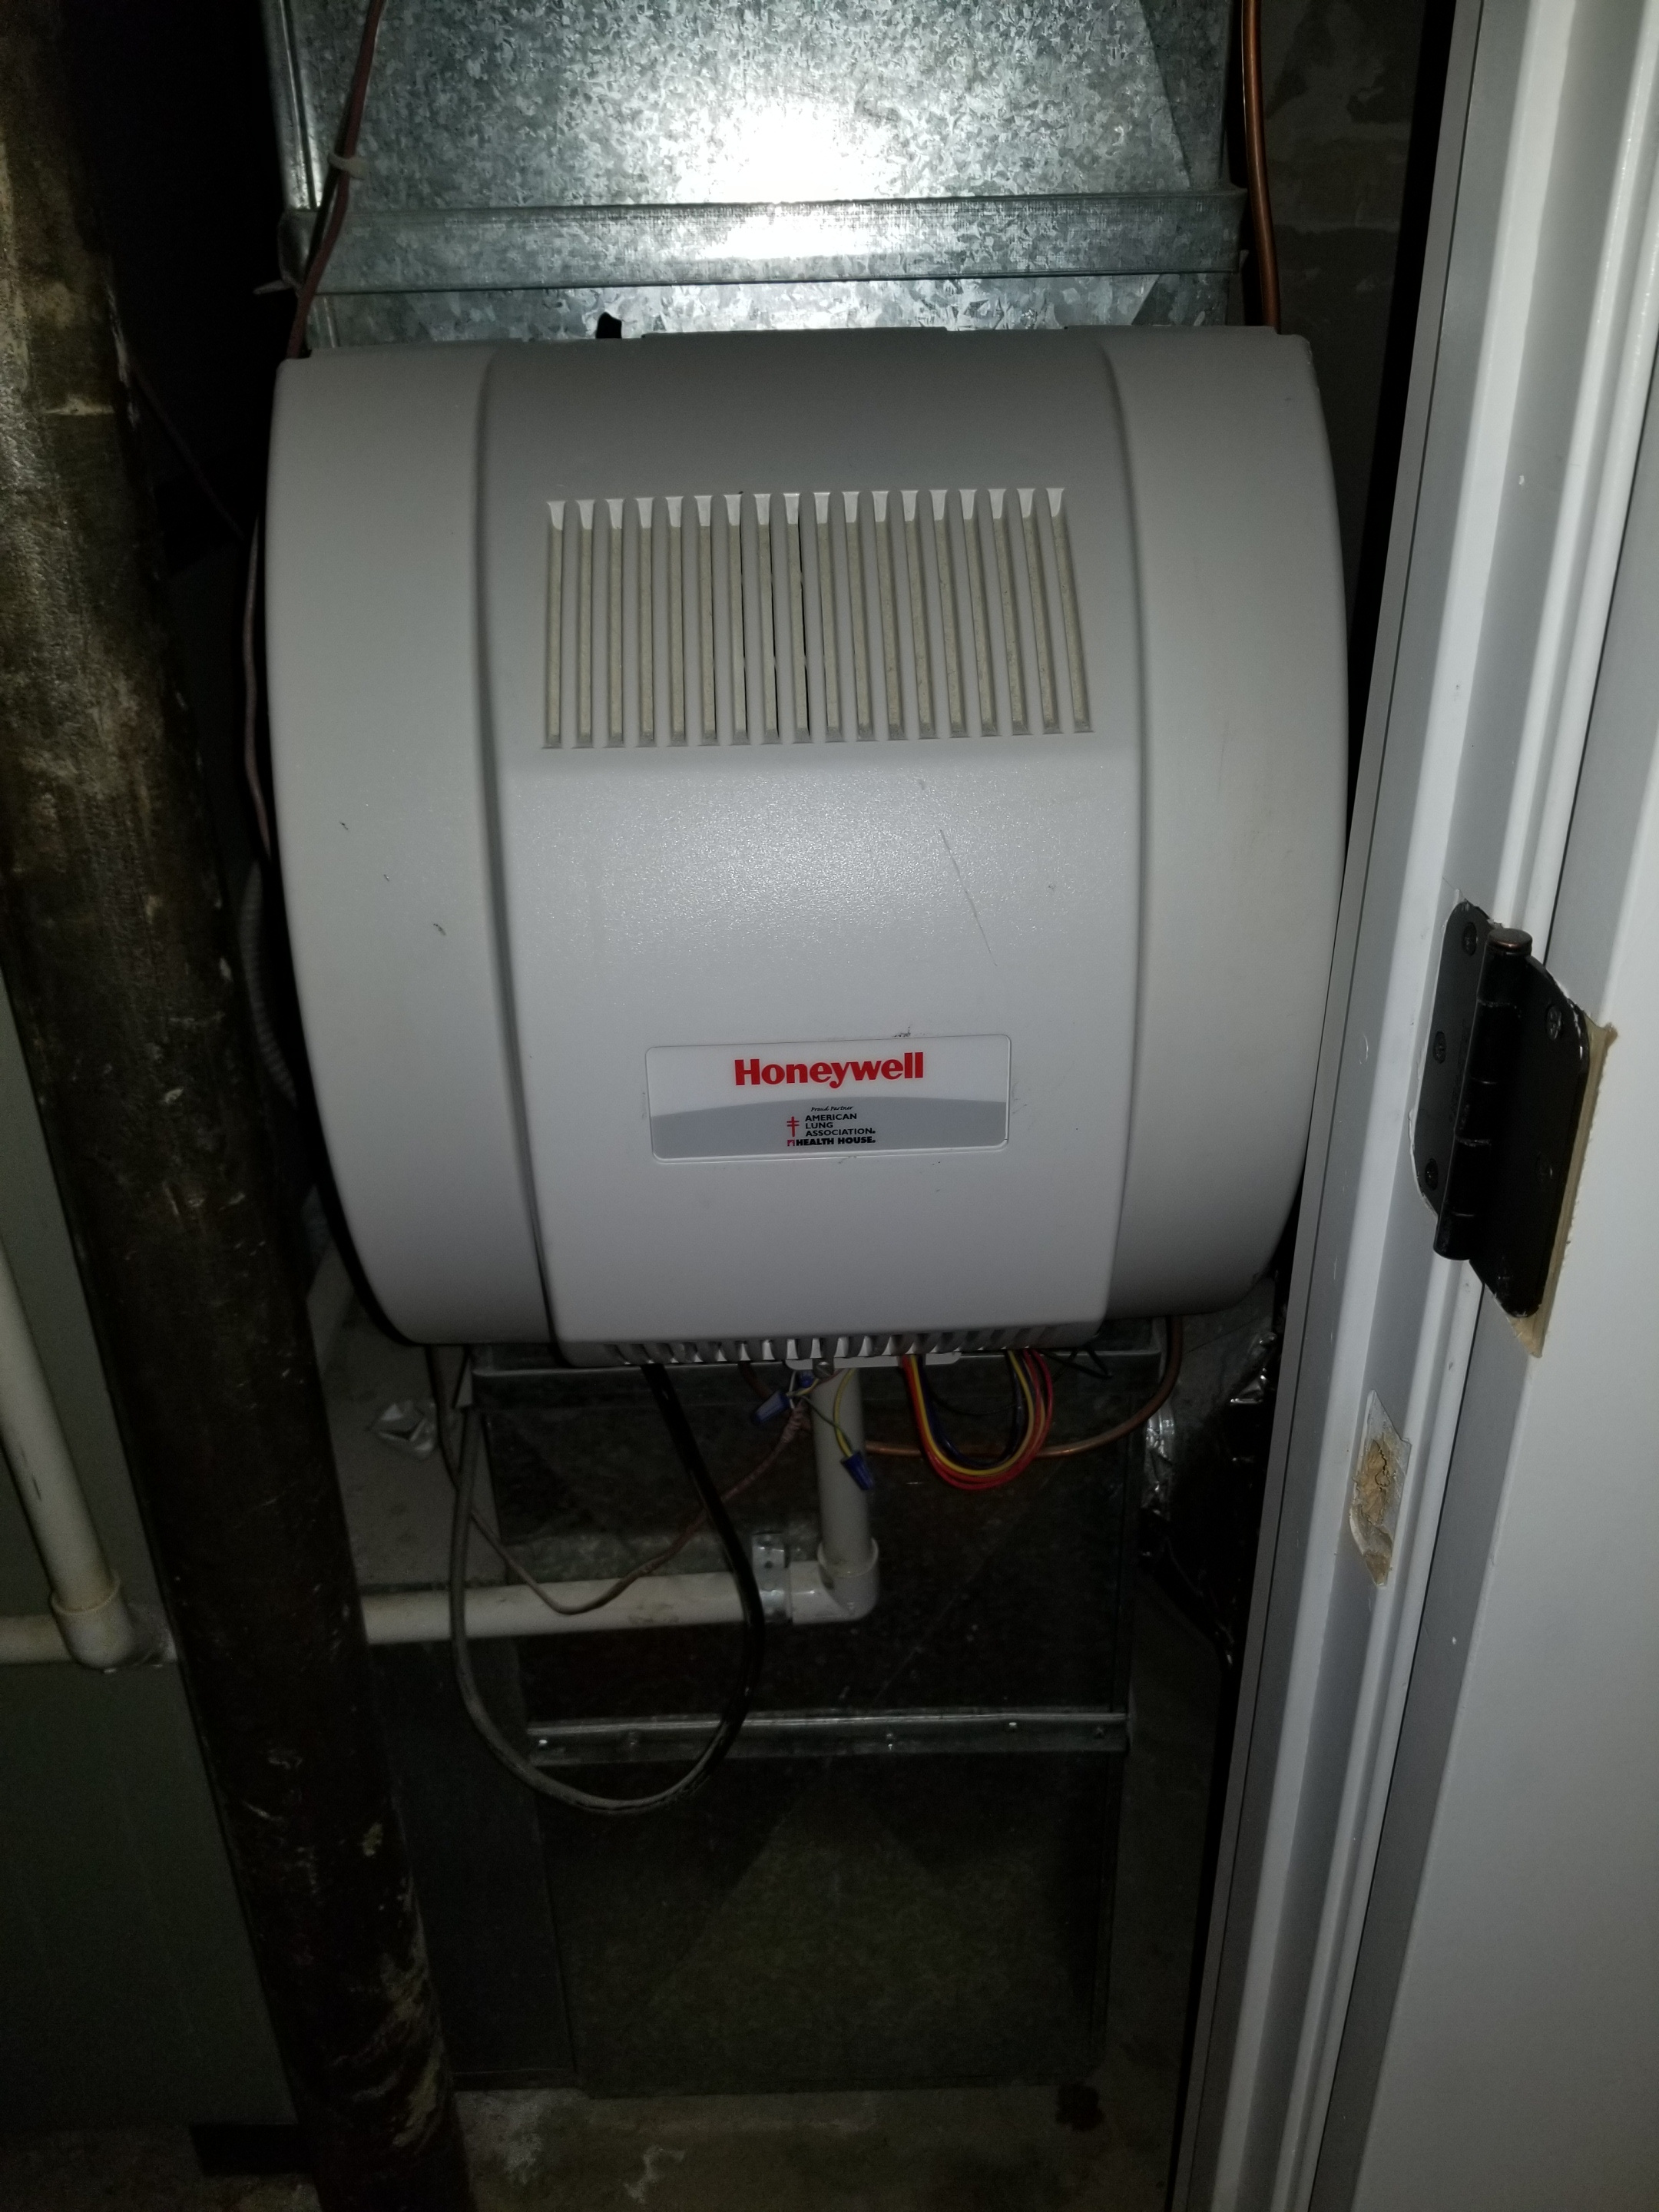 Repaired the Honeywell humidifier